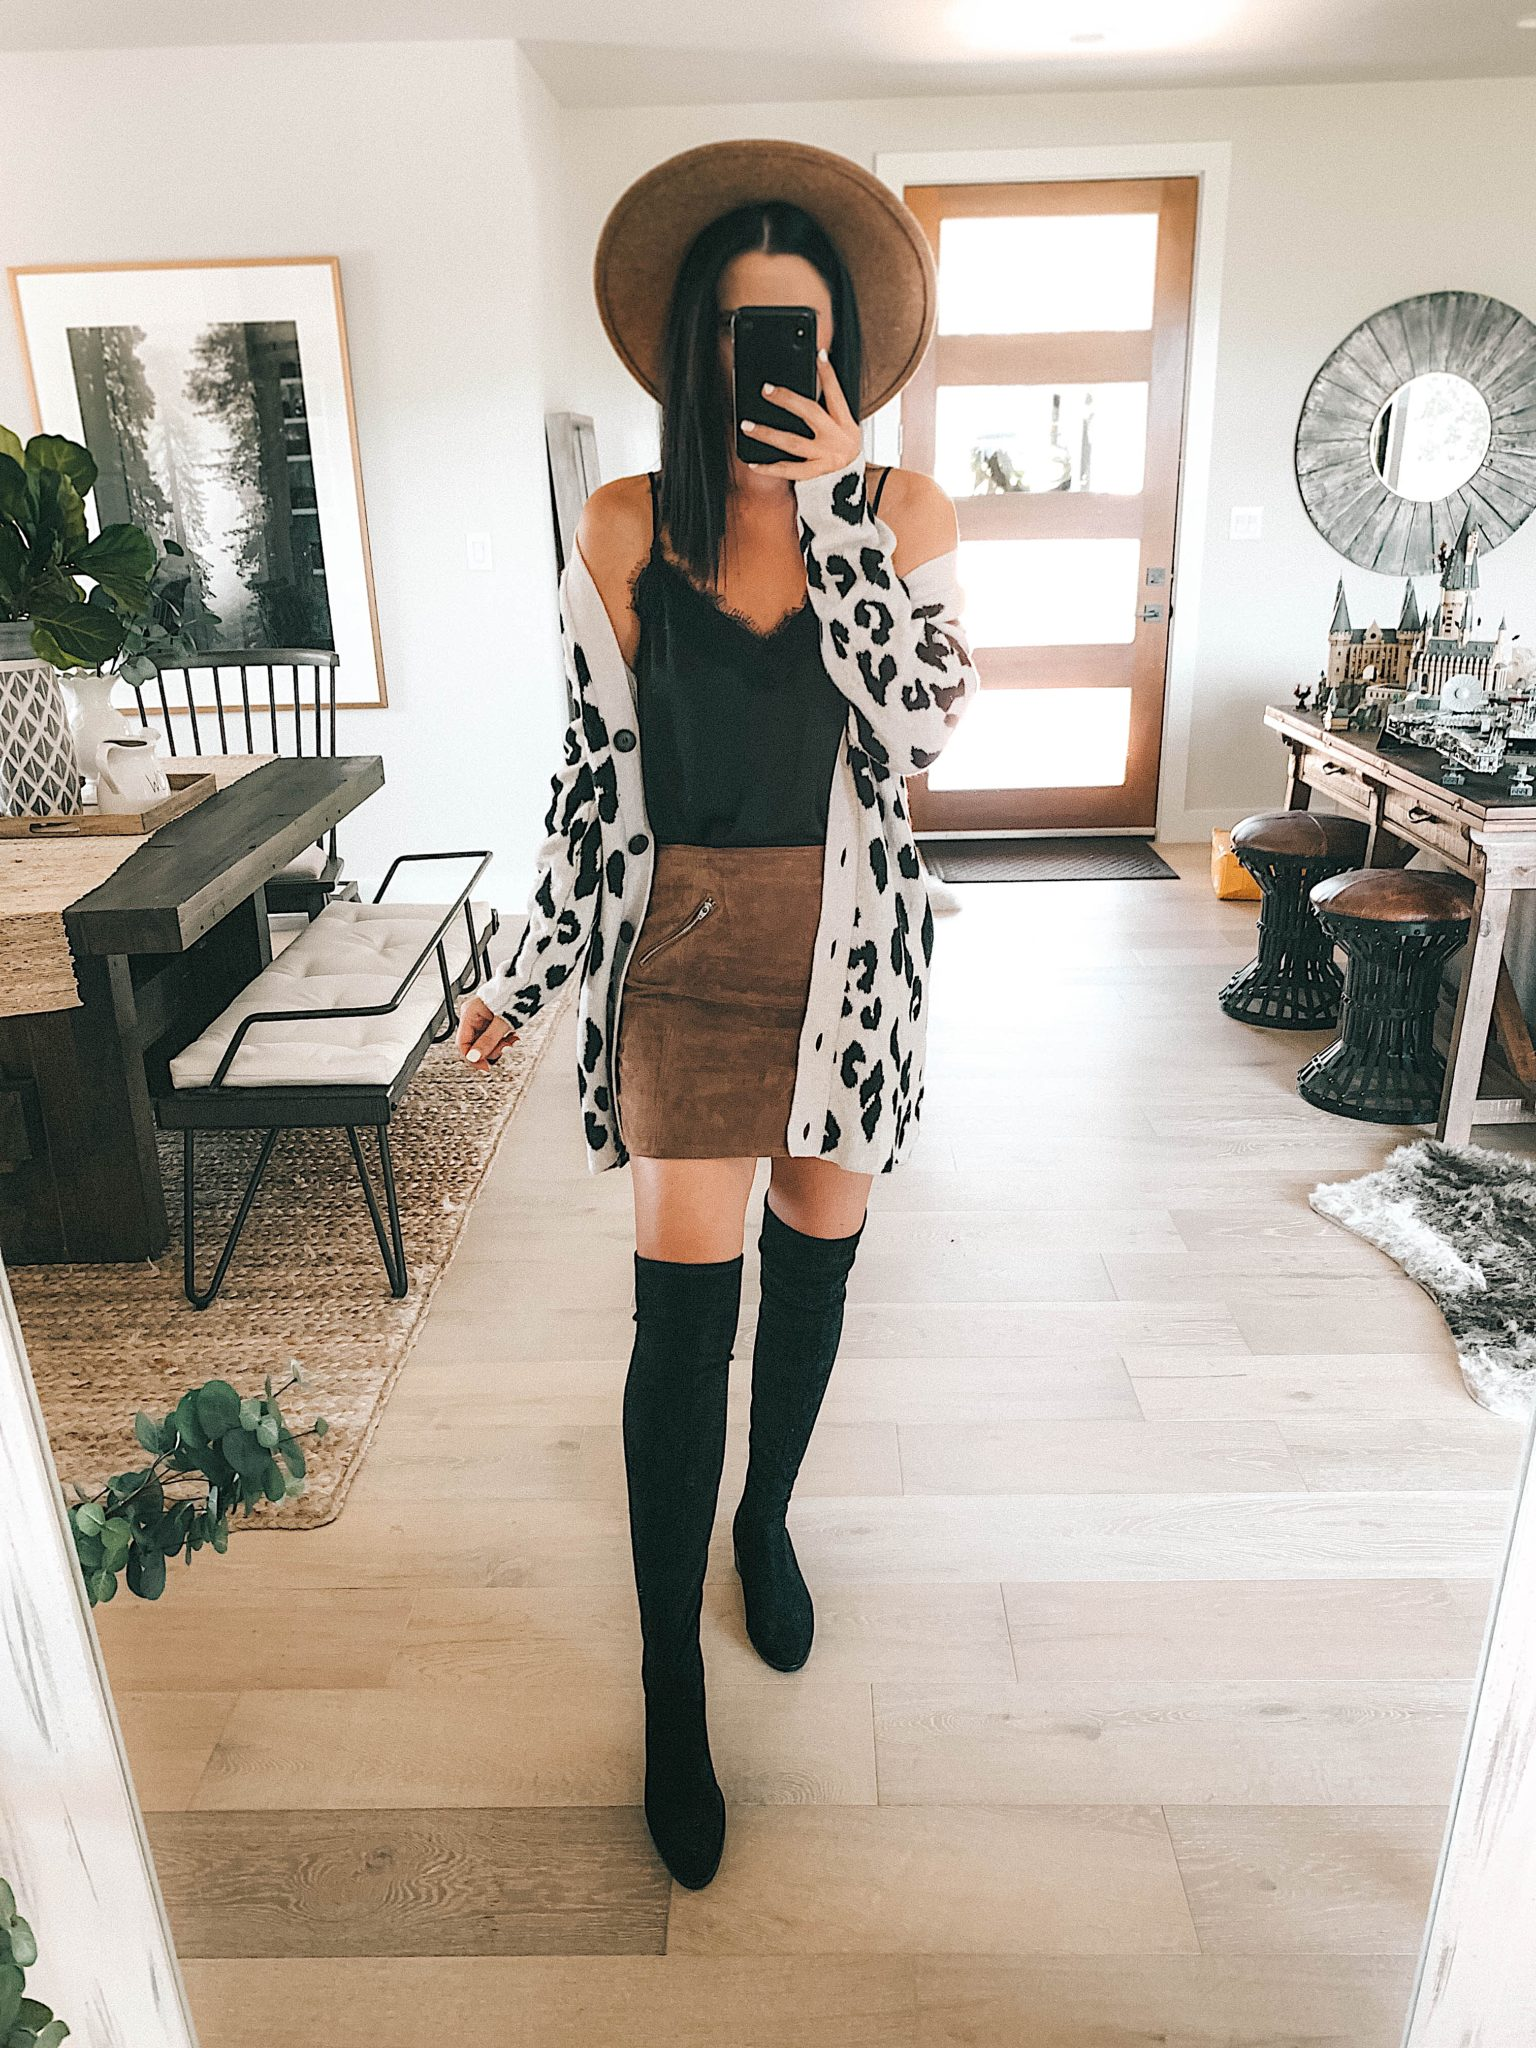 how to create a capsule wardrobe with picks from the Nordstrom Anniversary Sale. by popular Austin fashion blog, Dressed to Kill: image of a woman standing in her house and wearing a Nordstrom BlankNYC Snakeskin Mini Skirt, leopard print cardigan, Steve Madden Over the Knee Boots and BP Lace Cami